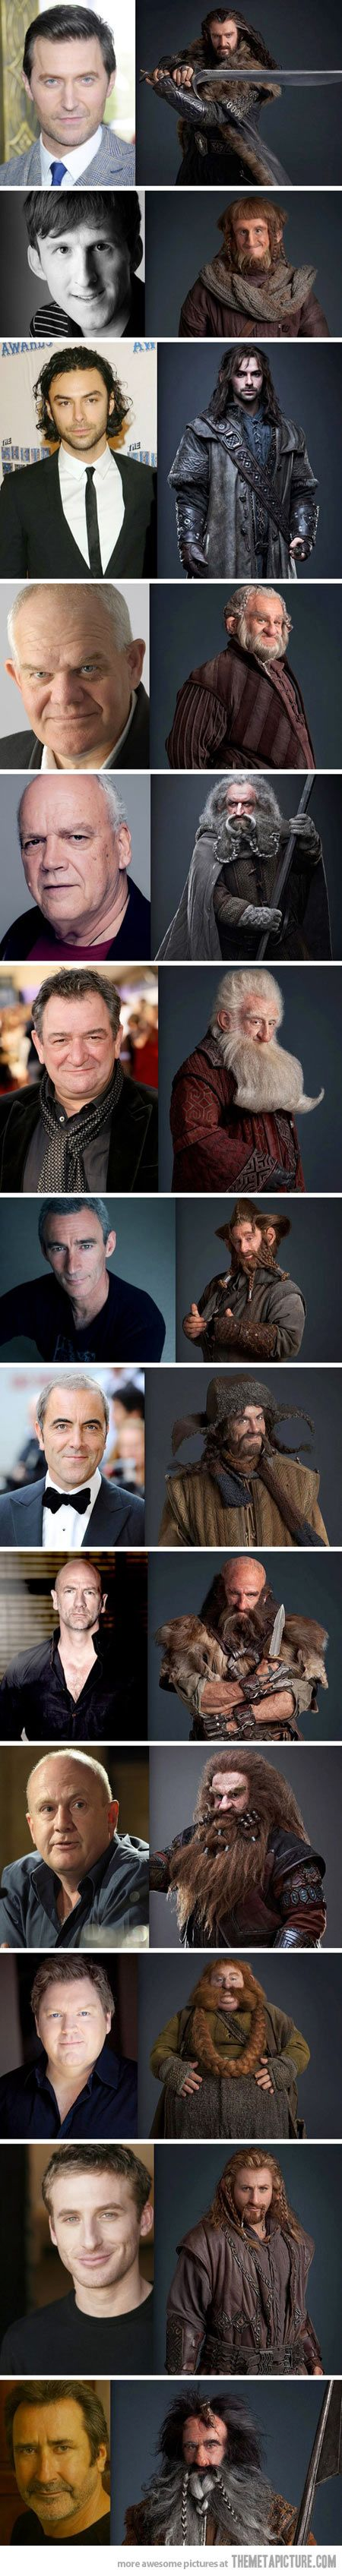 The Hobbit dwarves, pre and post make-up…INCREDIBLE! :)